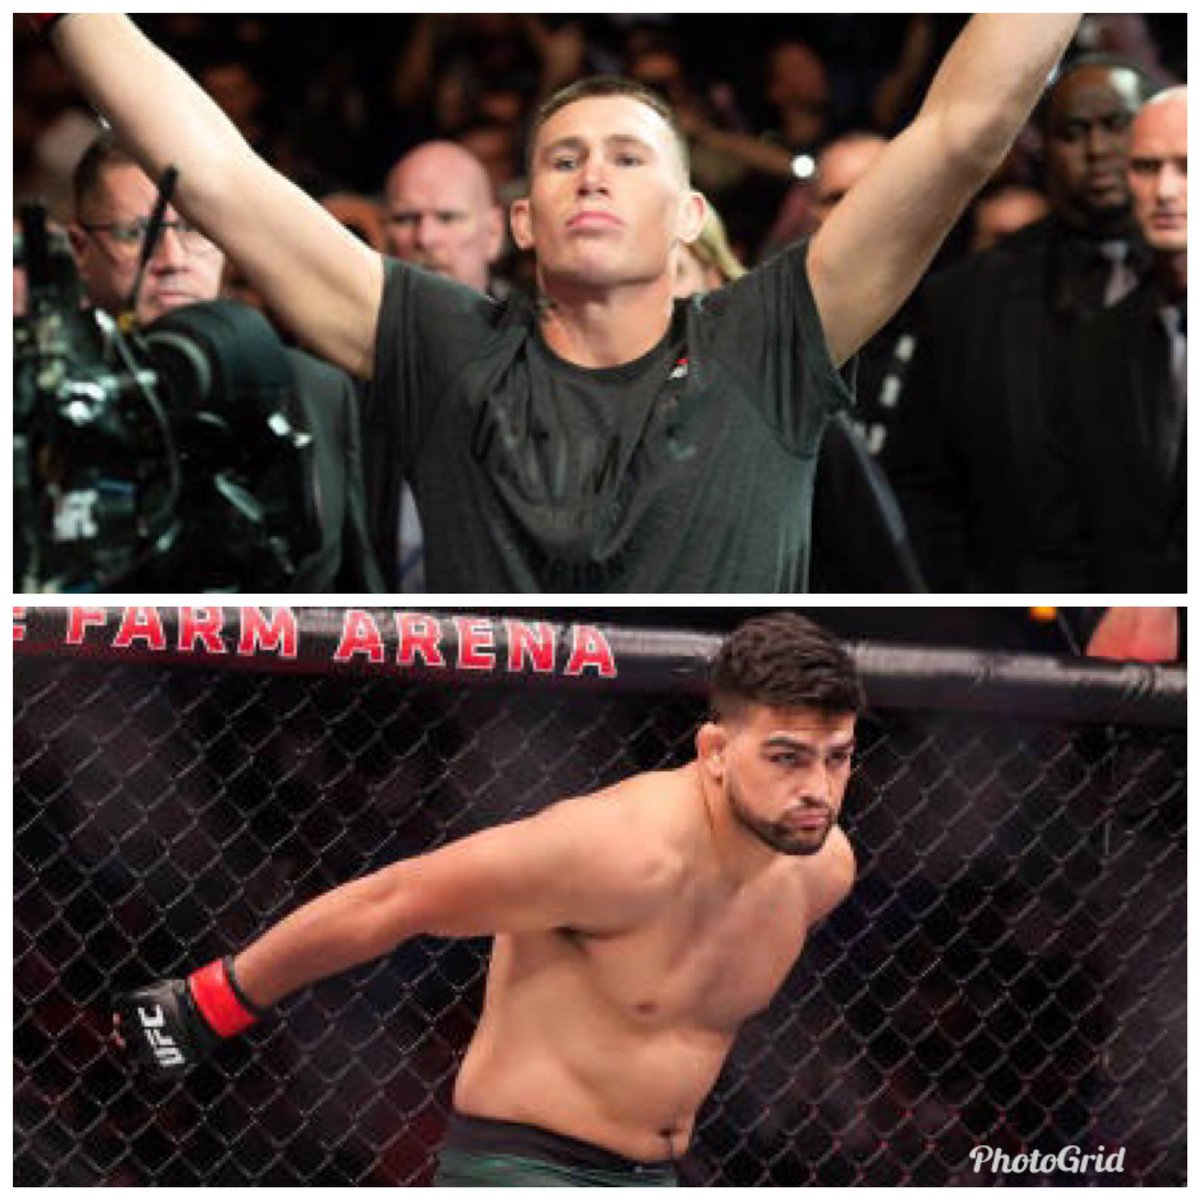 Breaking: Darren Till is moving up. Till vs. Kelvin Gastelum at middleweight is a done deal for UFC 244 on Nov. 2 in NYC, per sources. What a fight. https://t.co/0otT8giprt